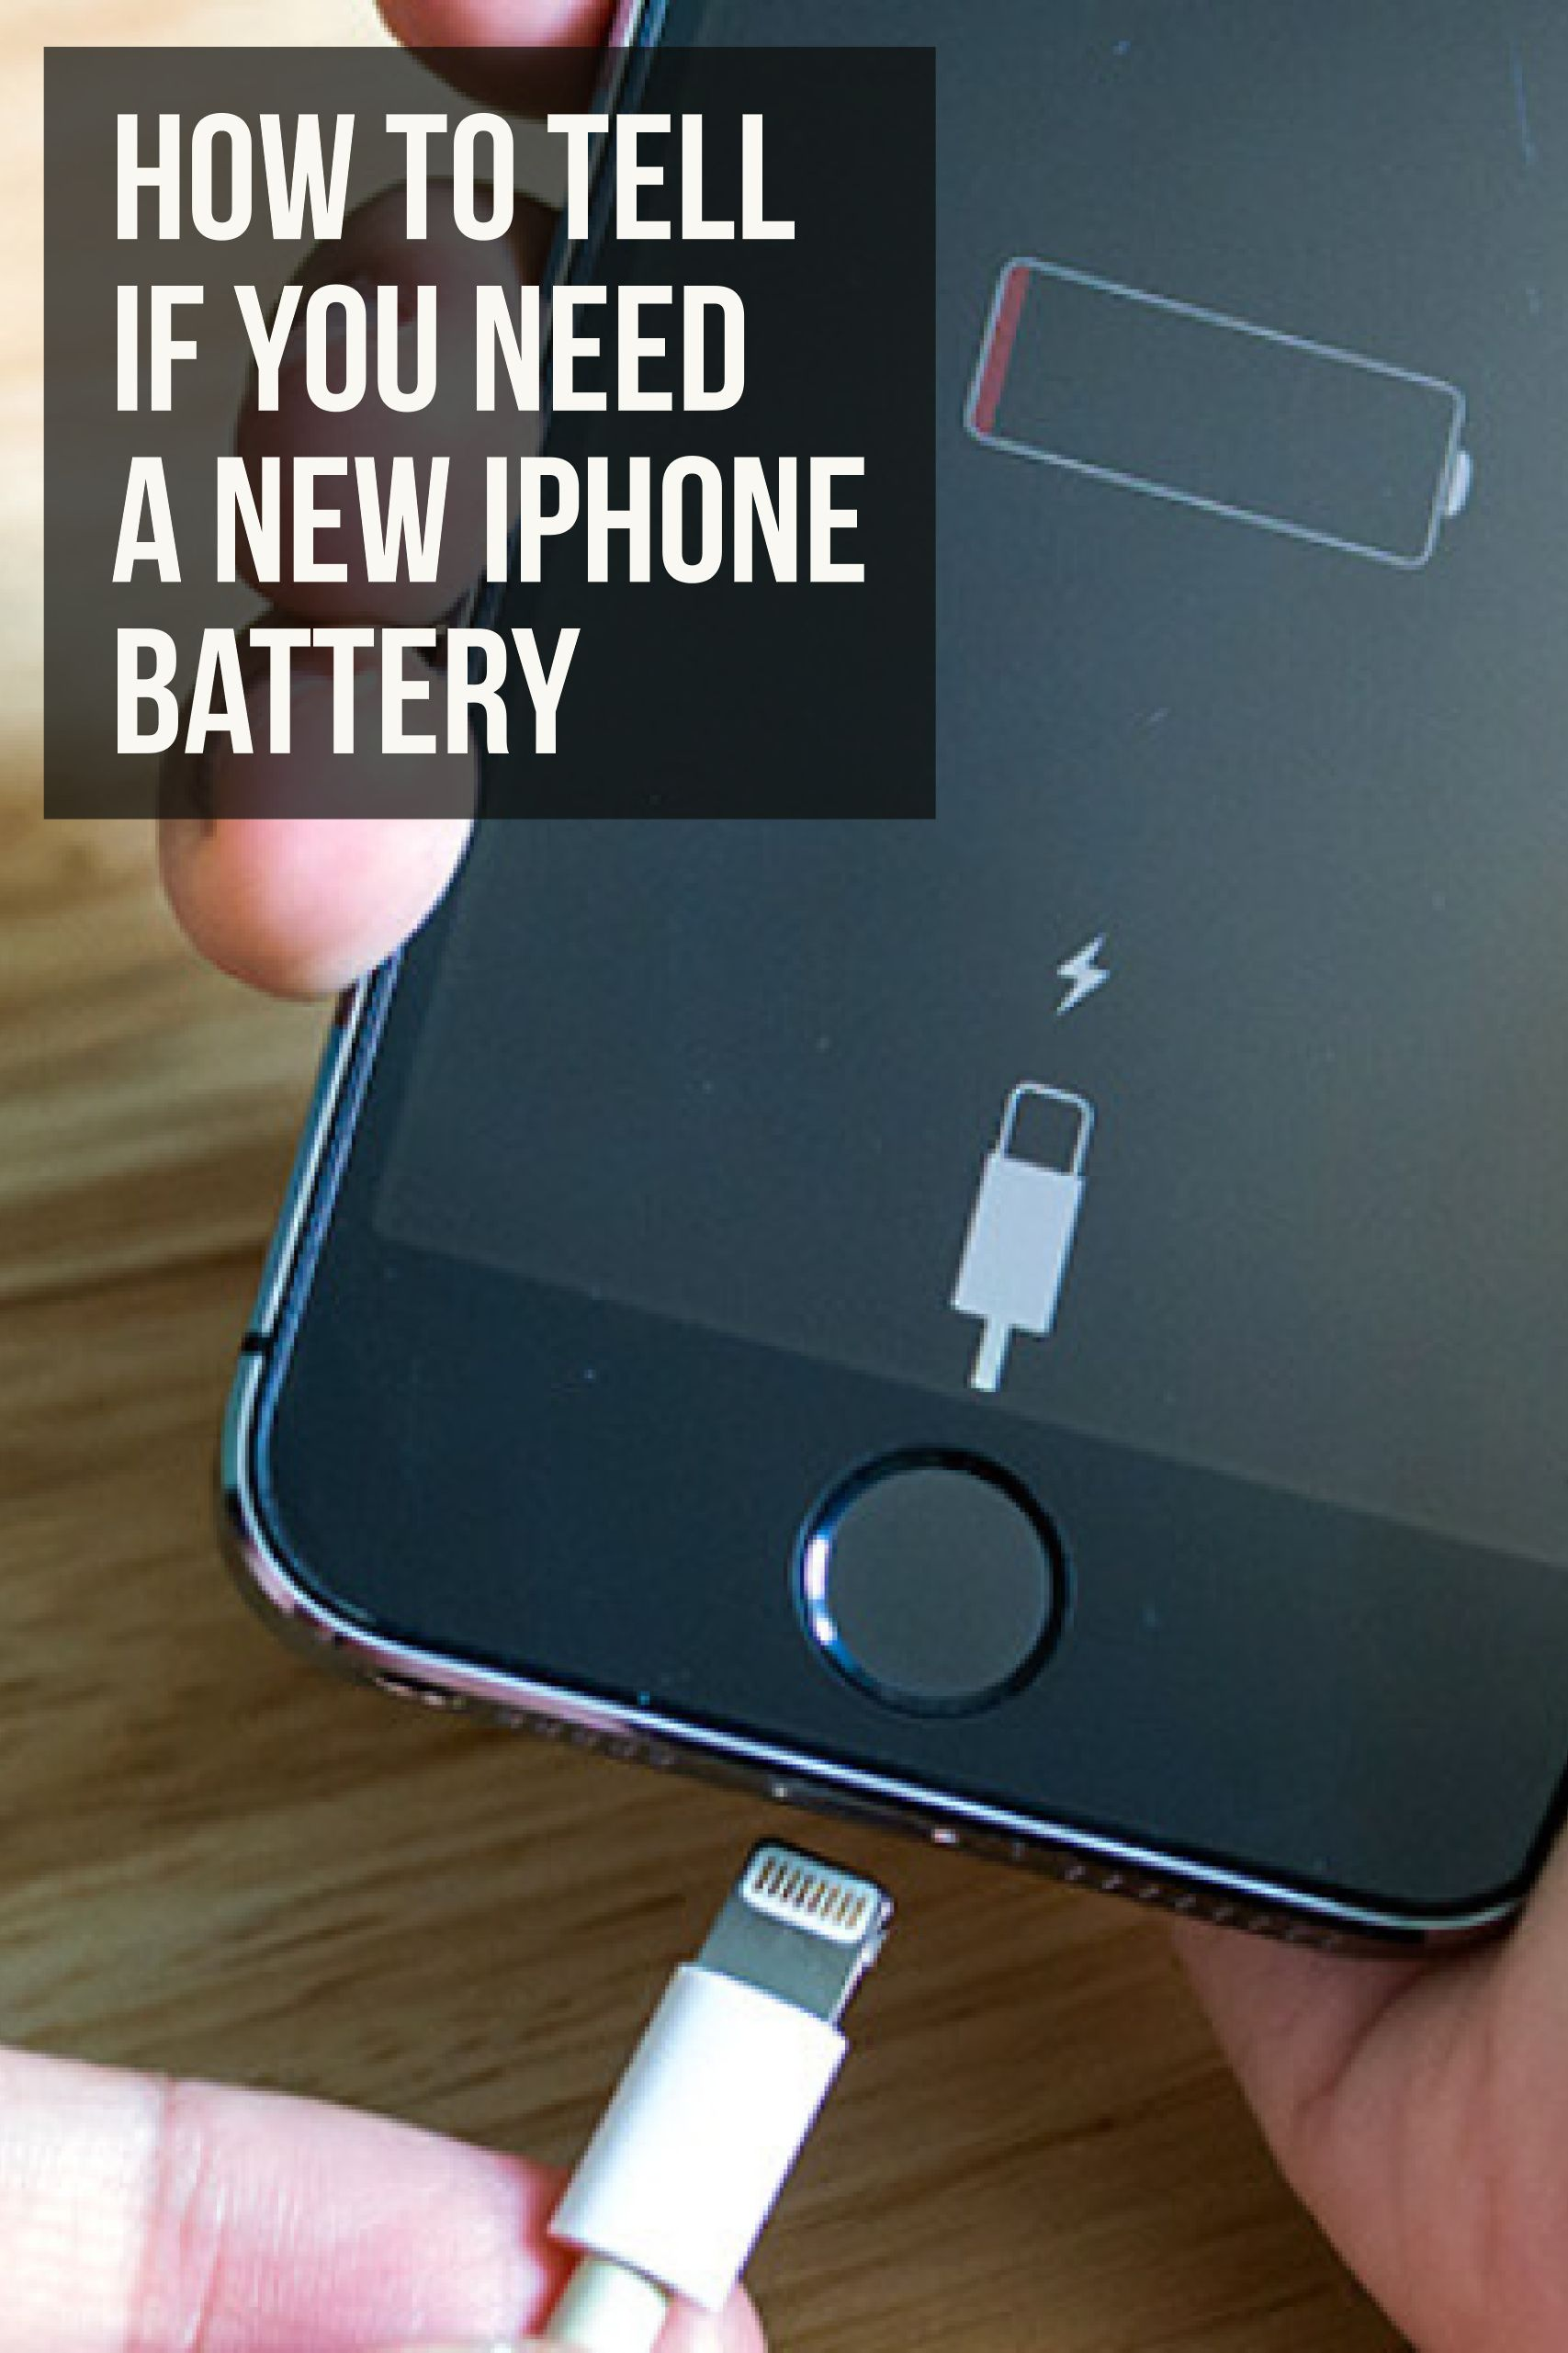 How to Tell if You Need a New iPhone Battery Iphone